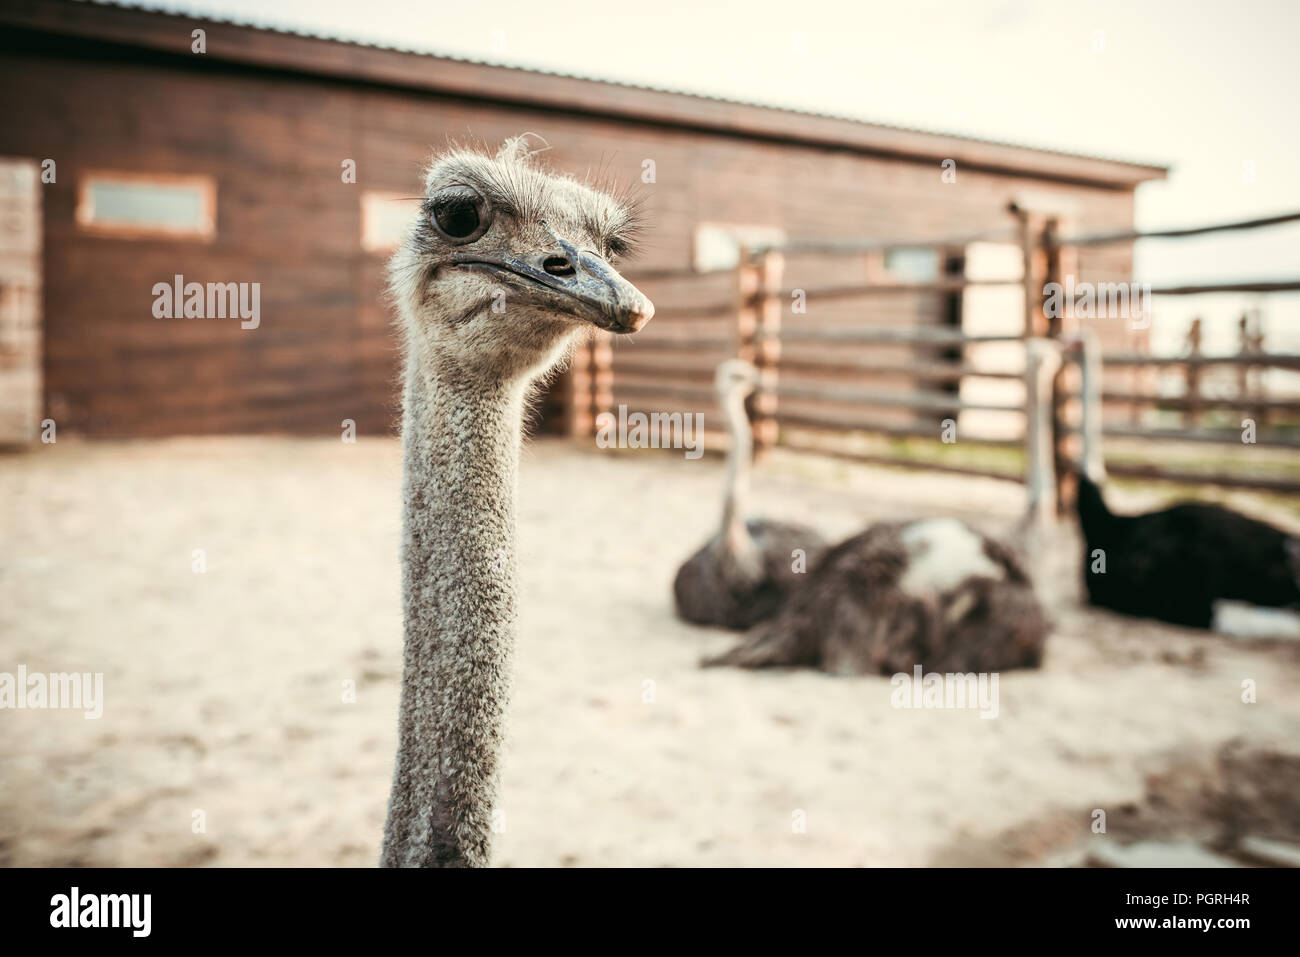 closeup view of ostrich muzzle and other ostriches sitting behind in corral at zoo - Stock Image